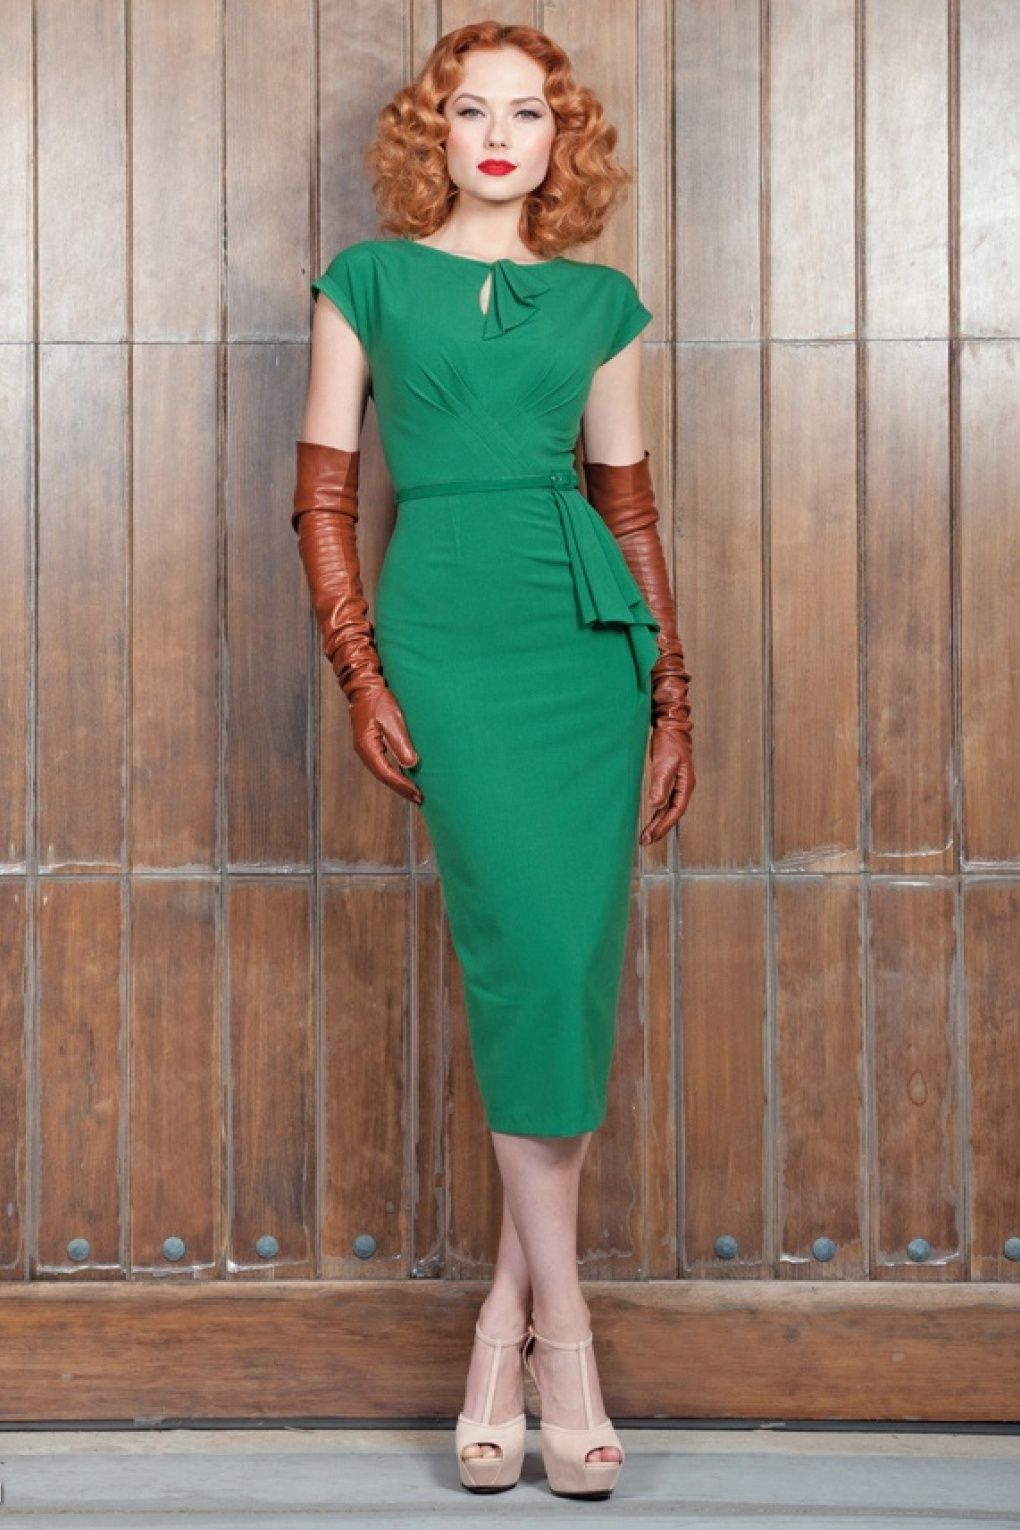 46c246e47745 New Stop Staring! collection - The 40s Timeless vintage green pencil dress  is a real treasure.